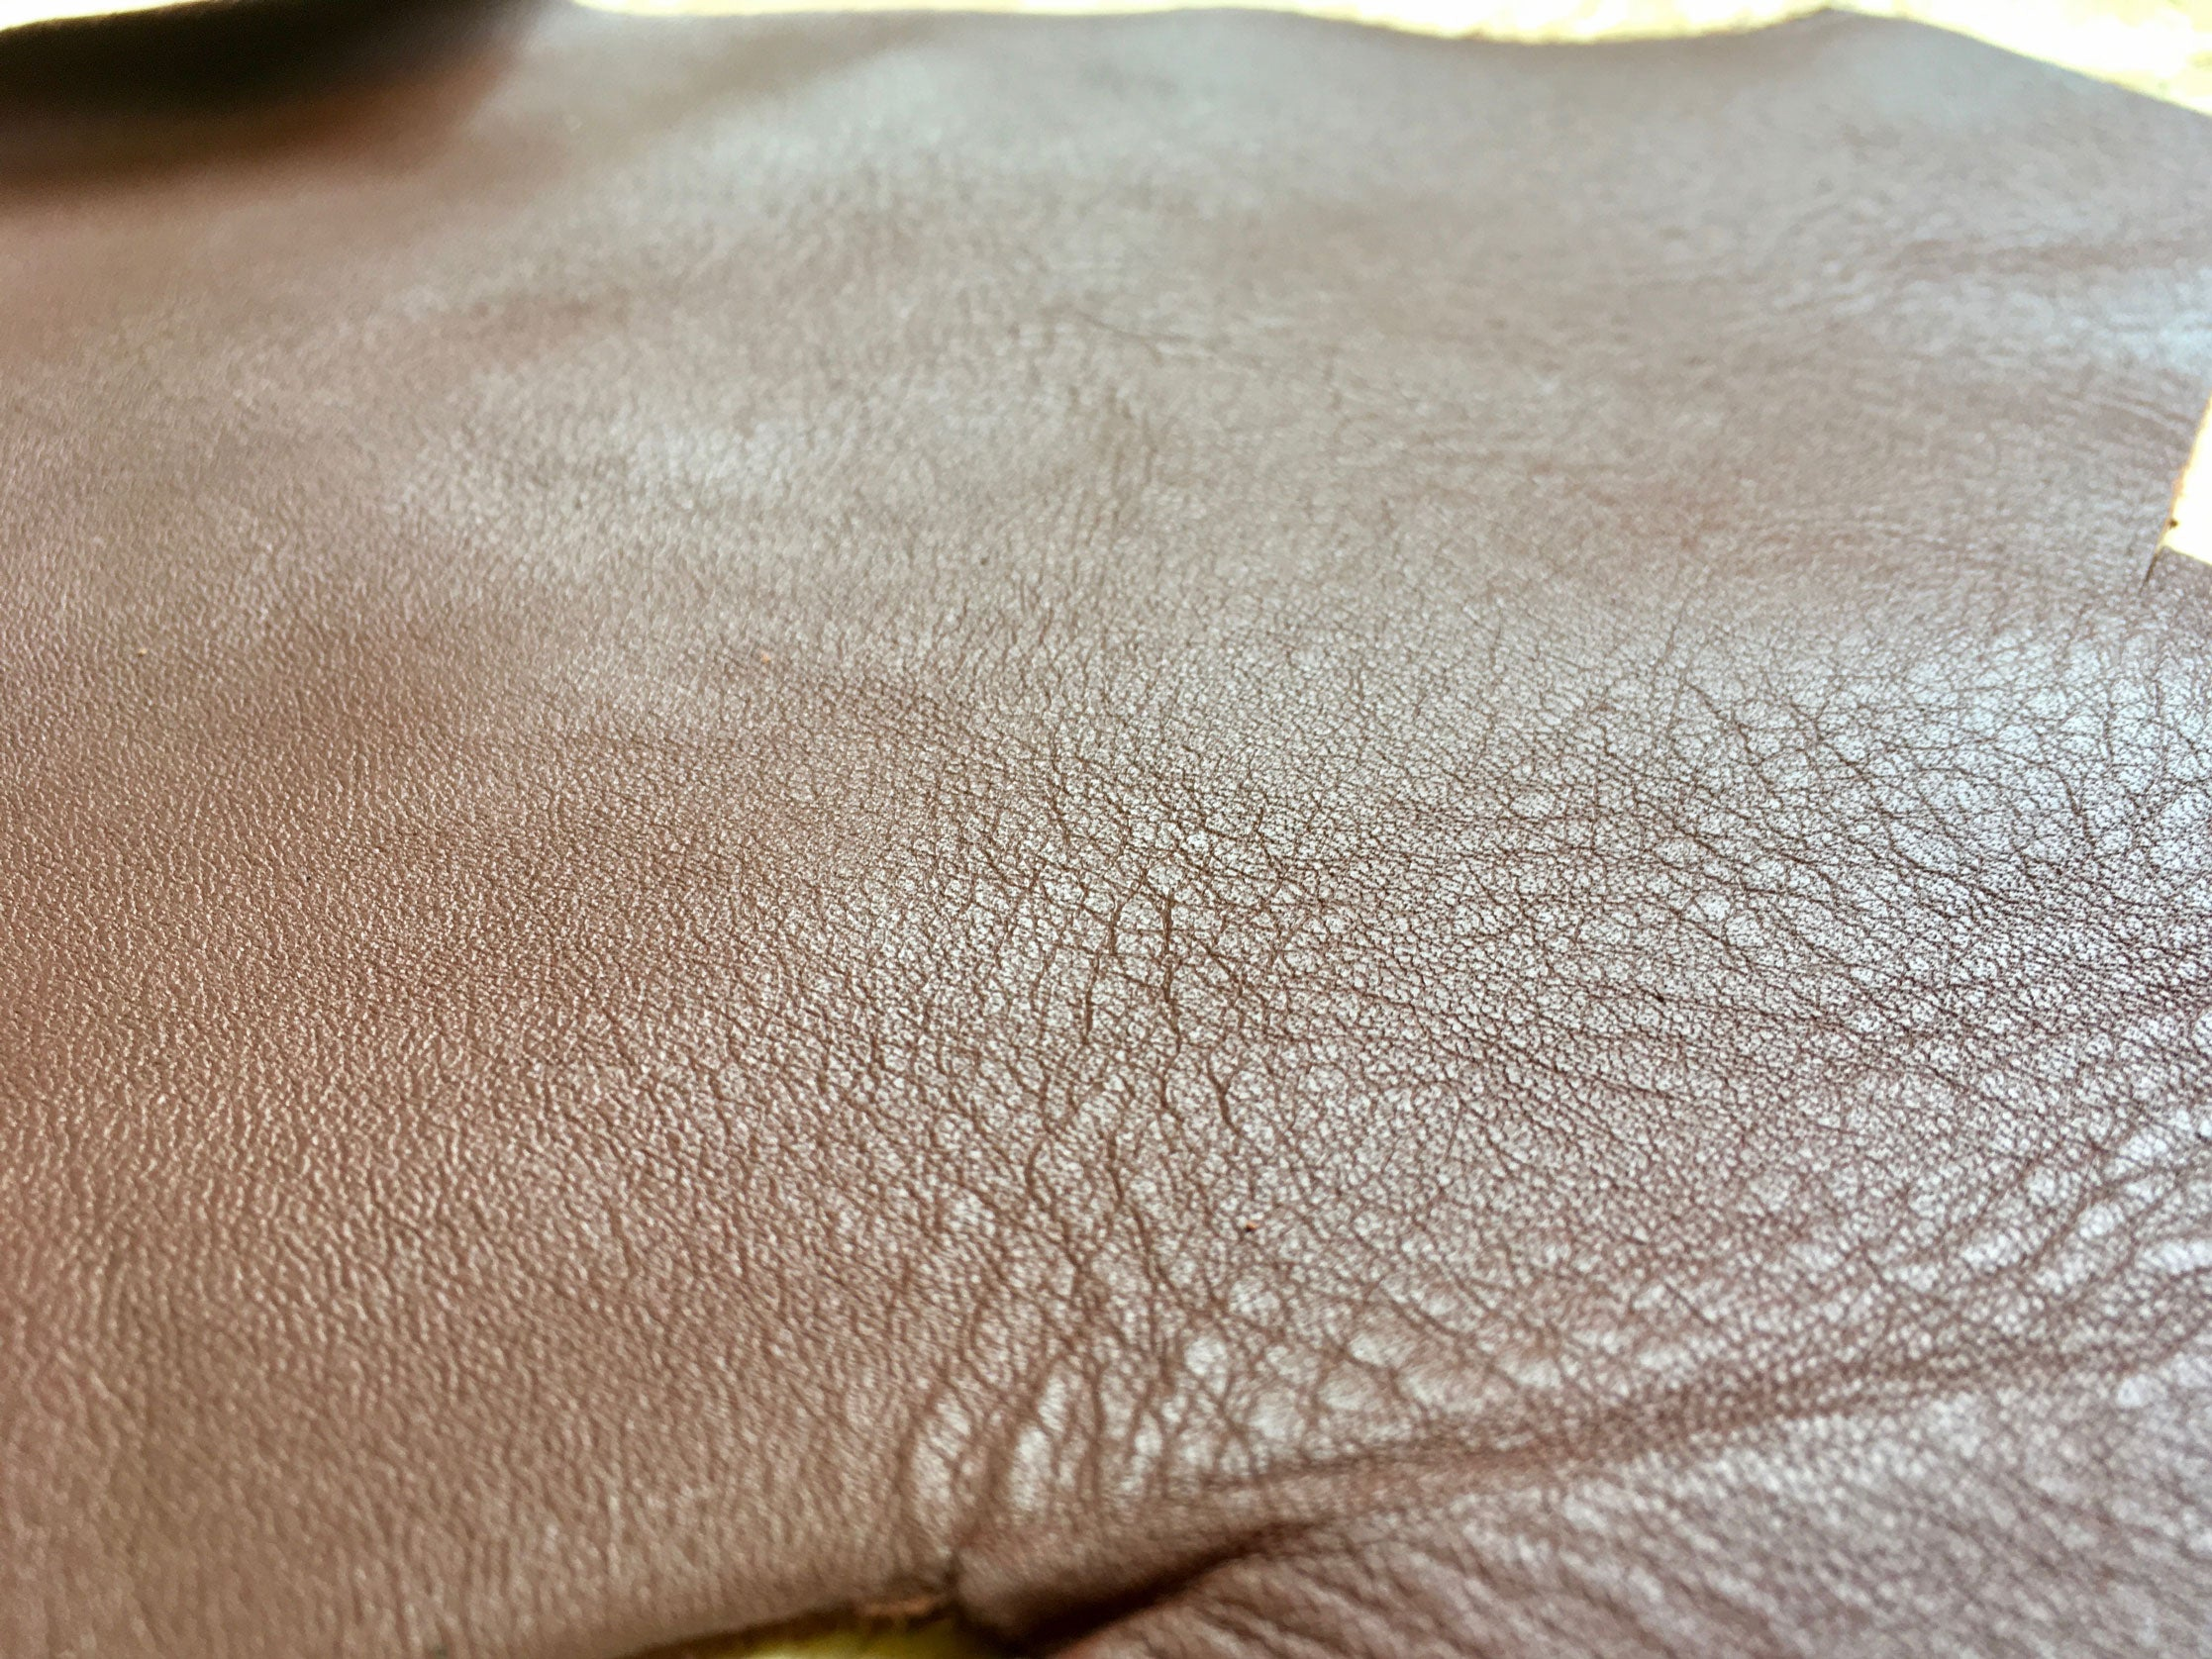 Texture of Scrap Leather Offcuts – Light Brown Cowhide Leather Pieces by Bookshell Bindery